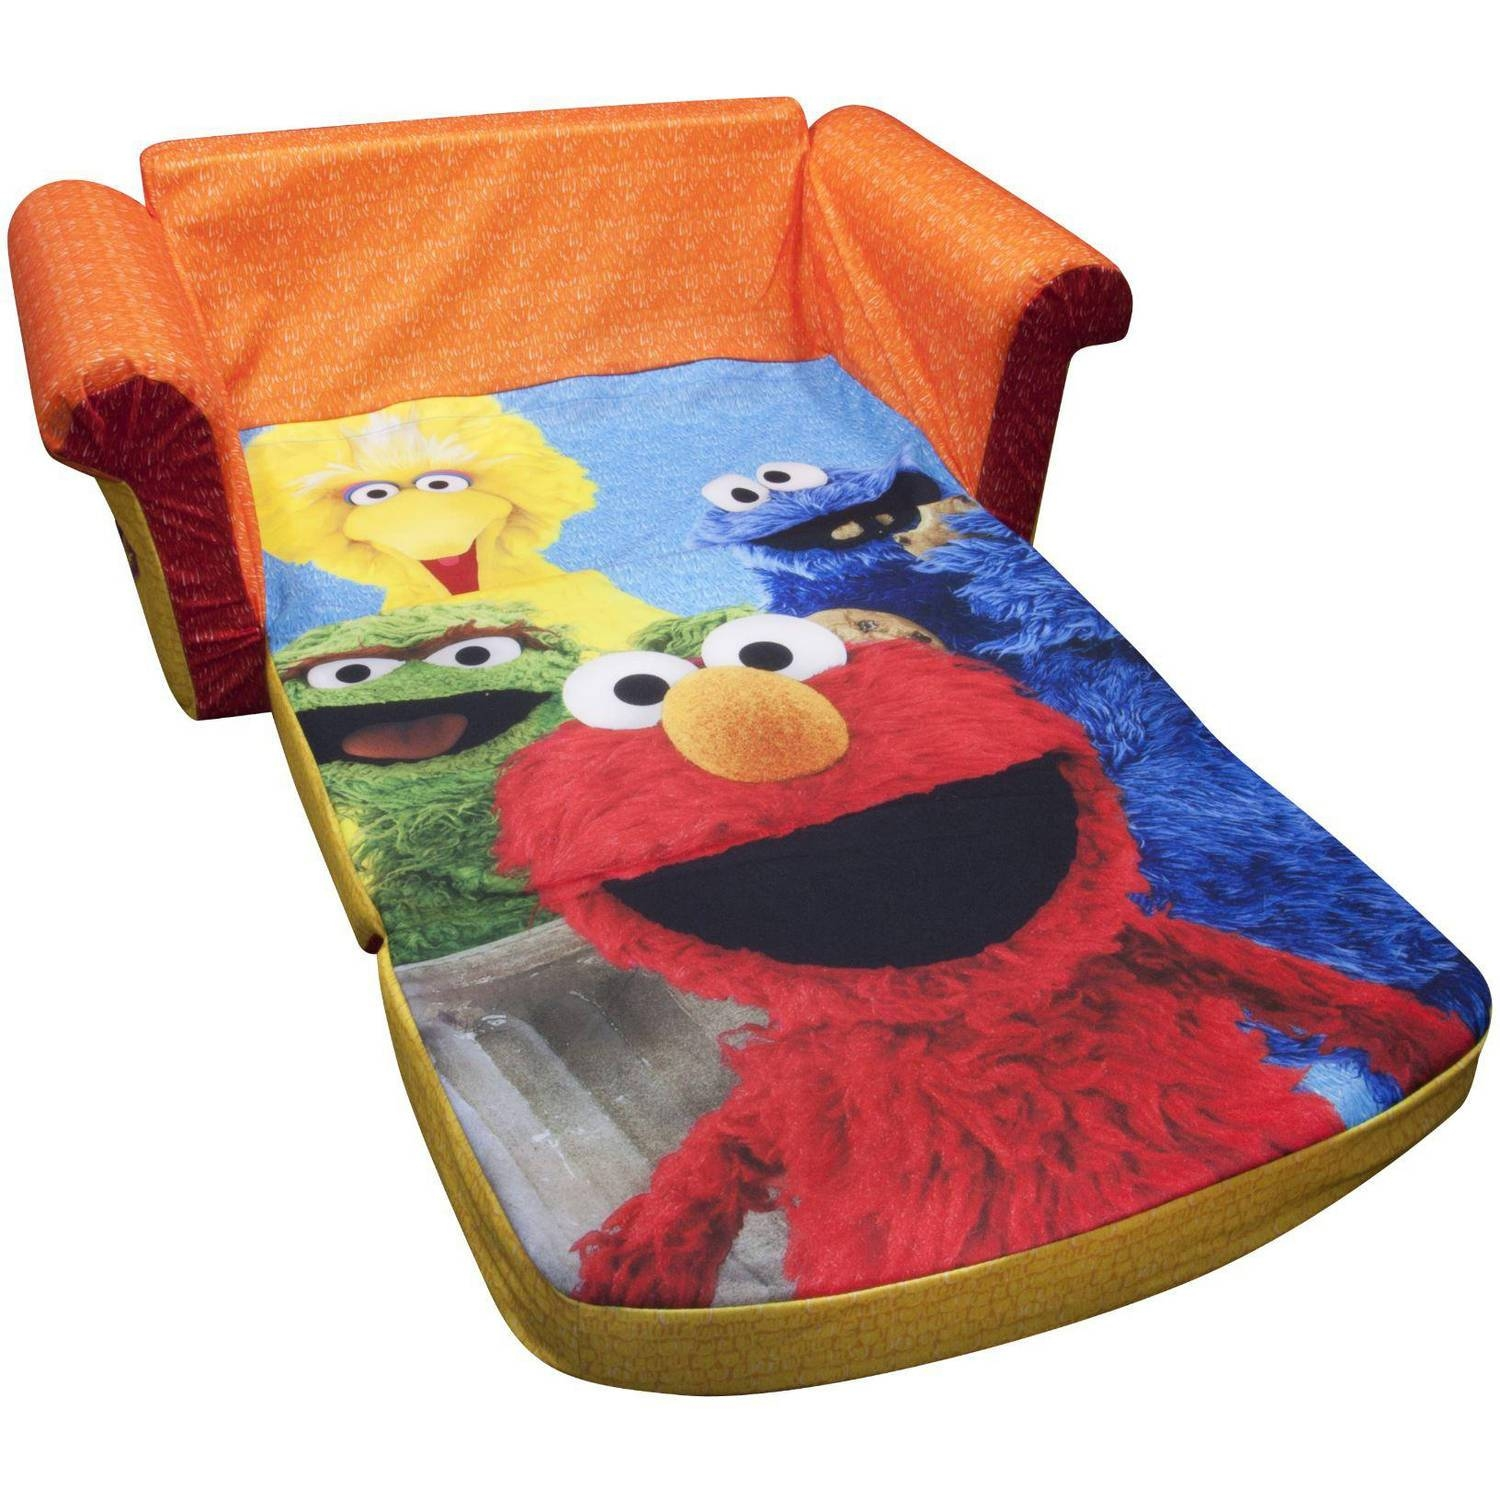 Marshmallow 2-In-1 Flip Open Sofa, Sesame Street's Elmo - Walmart regarding Flip Open Kids Sofas (Image 6 of 15)